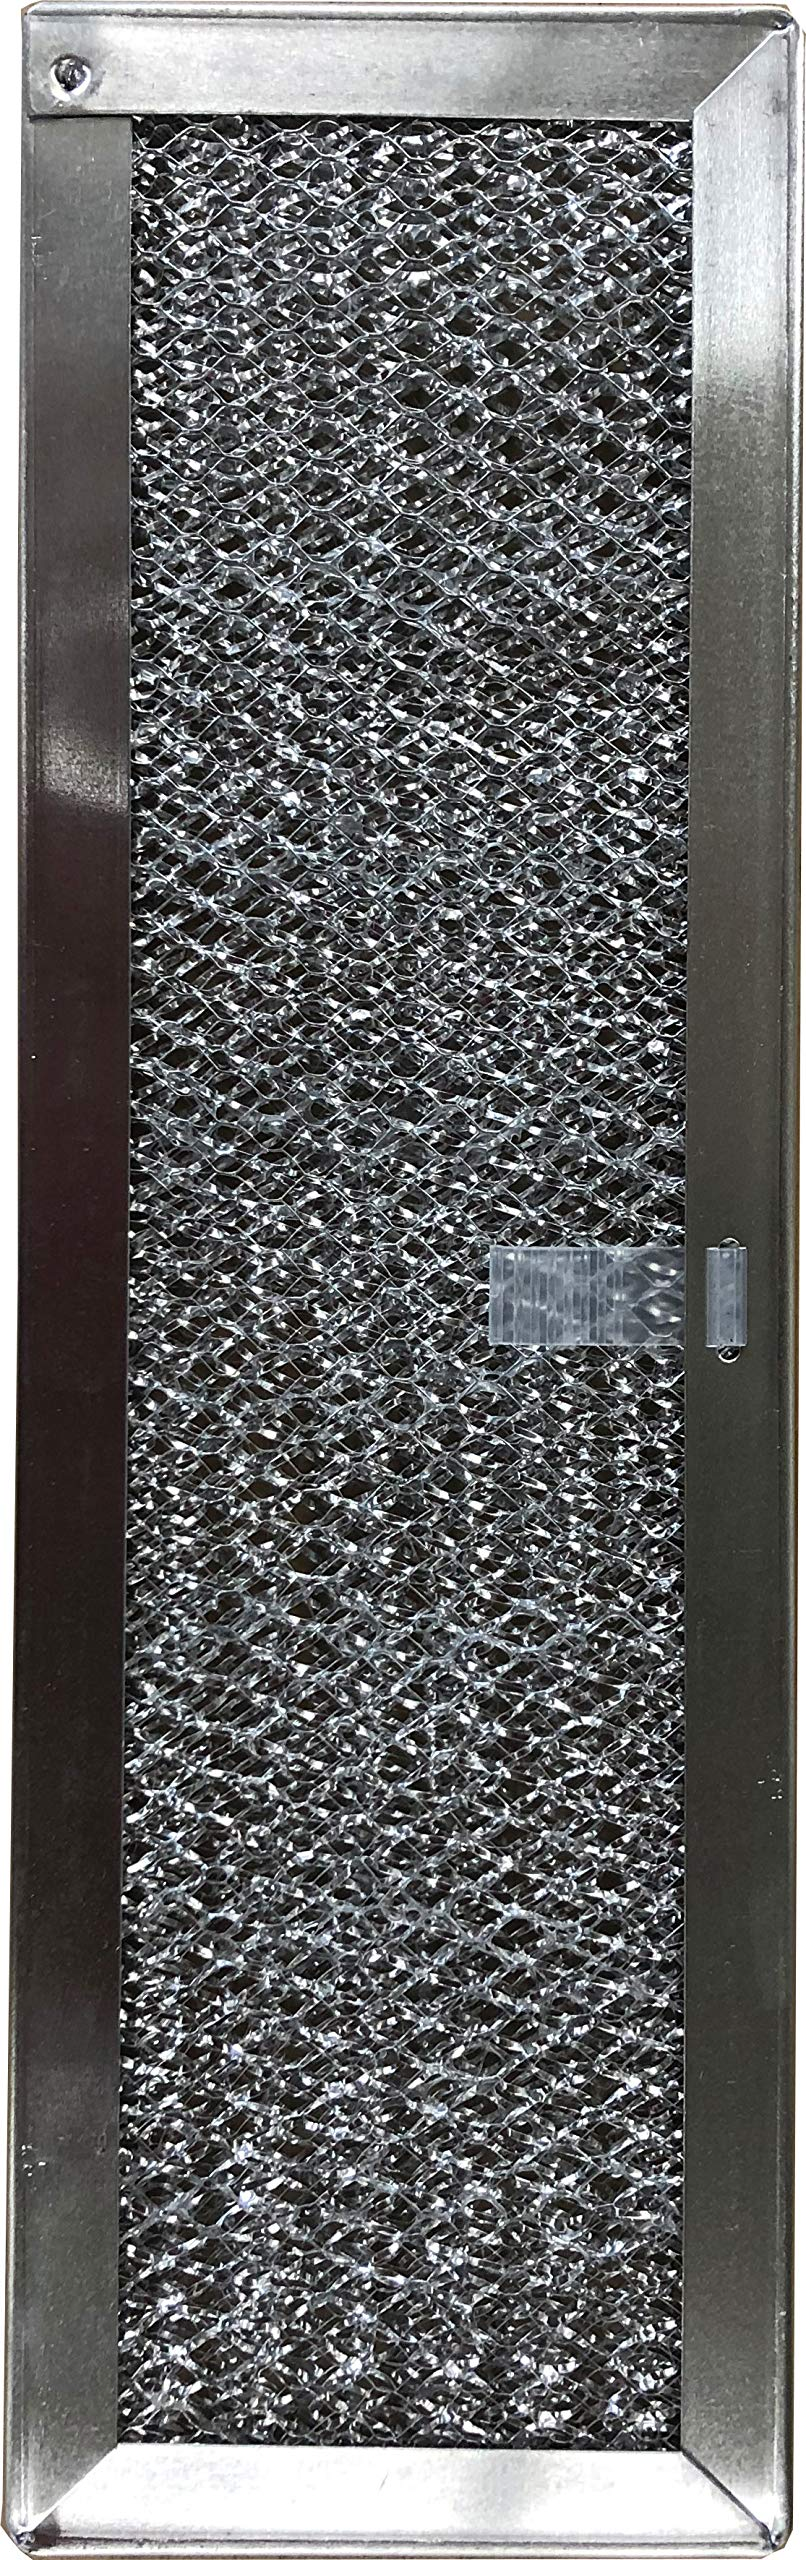 Replacement Aluminum Range Filter Compatible With GE WB2X4783,G 8166,RHF0314   3 1/2 x 11 3/4 x 3/32